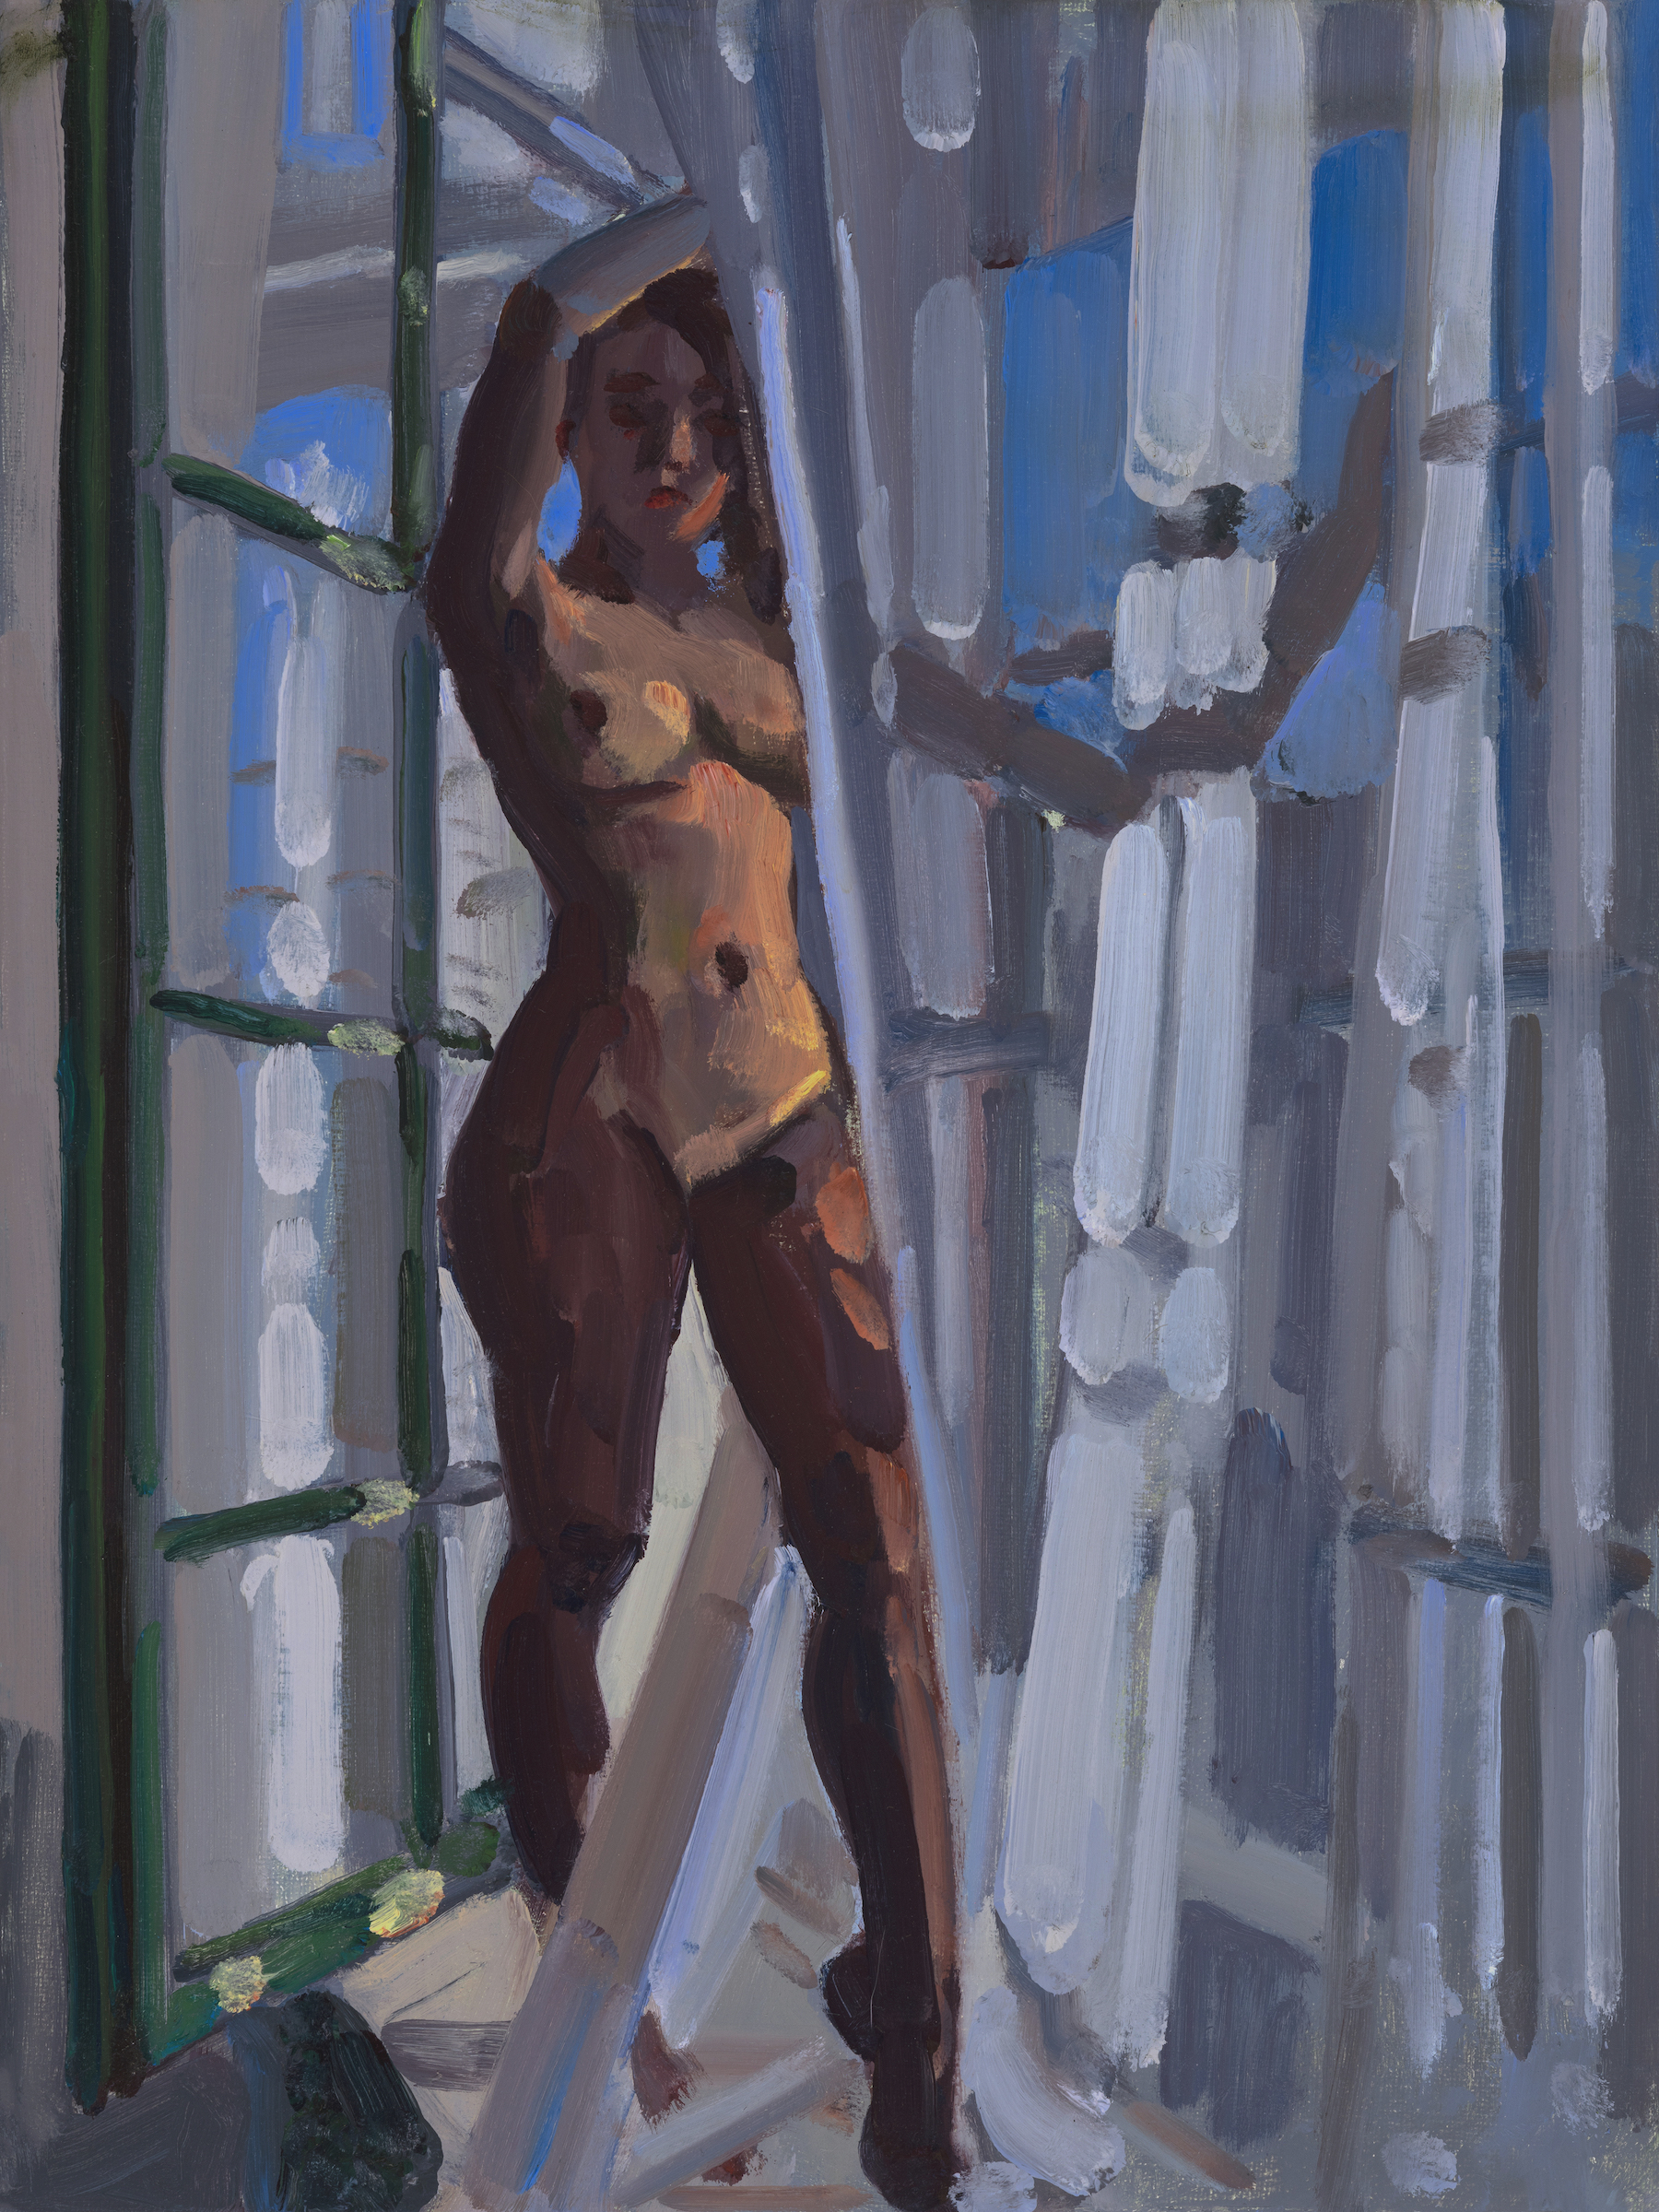 Nude in a Walk Through Window